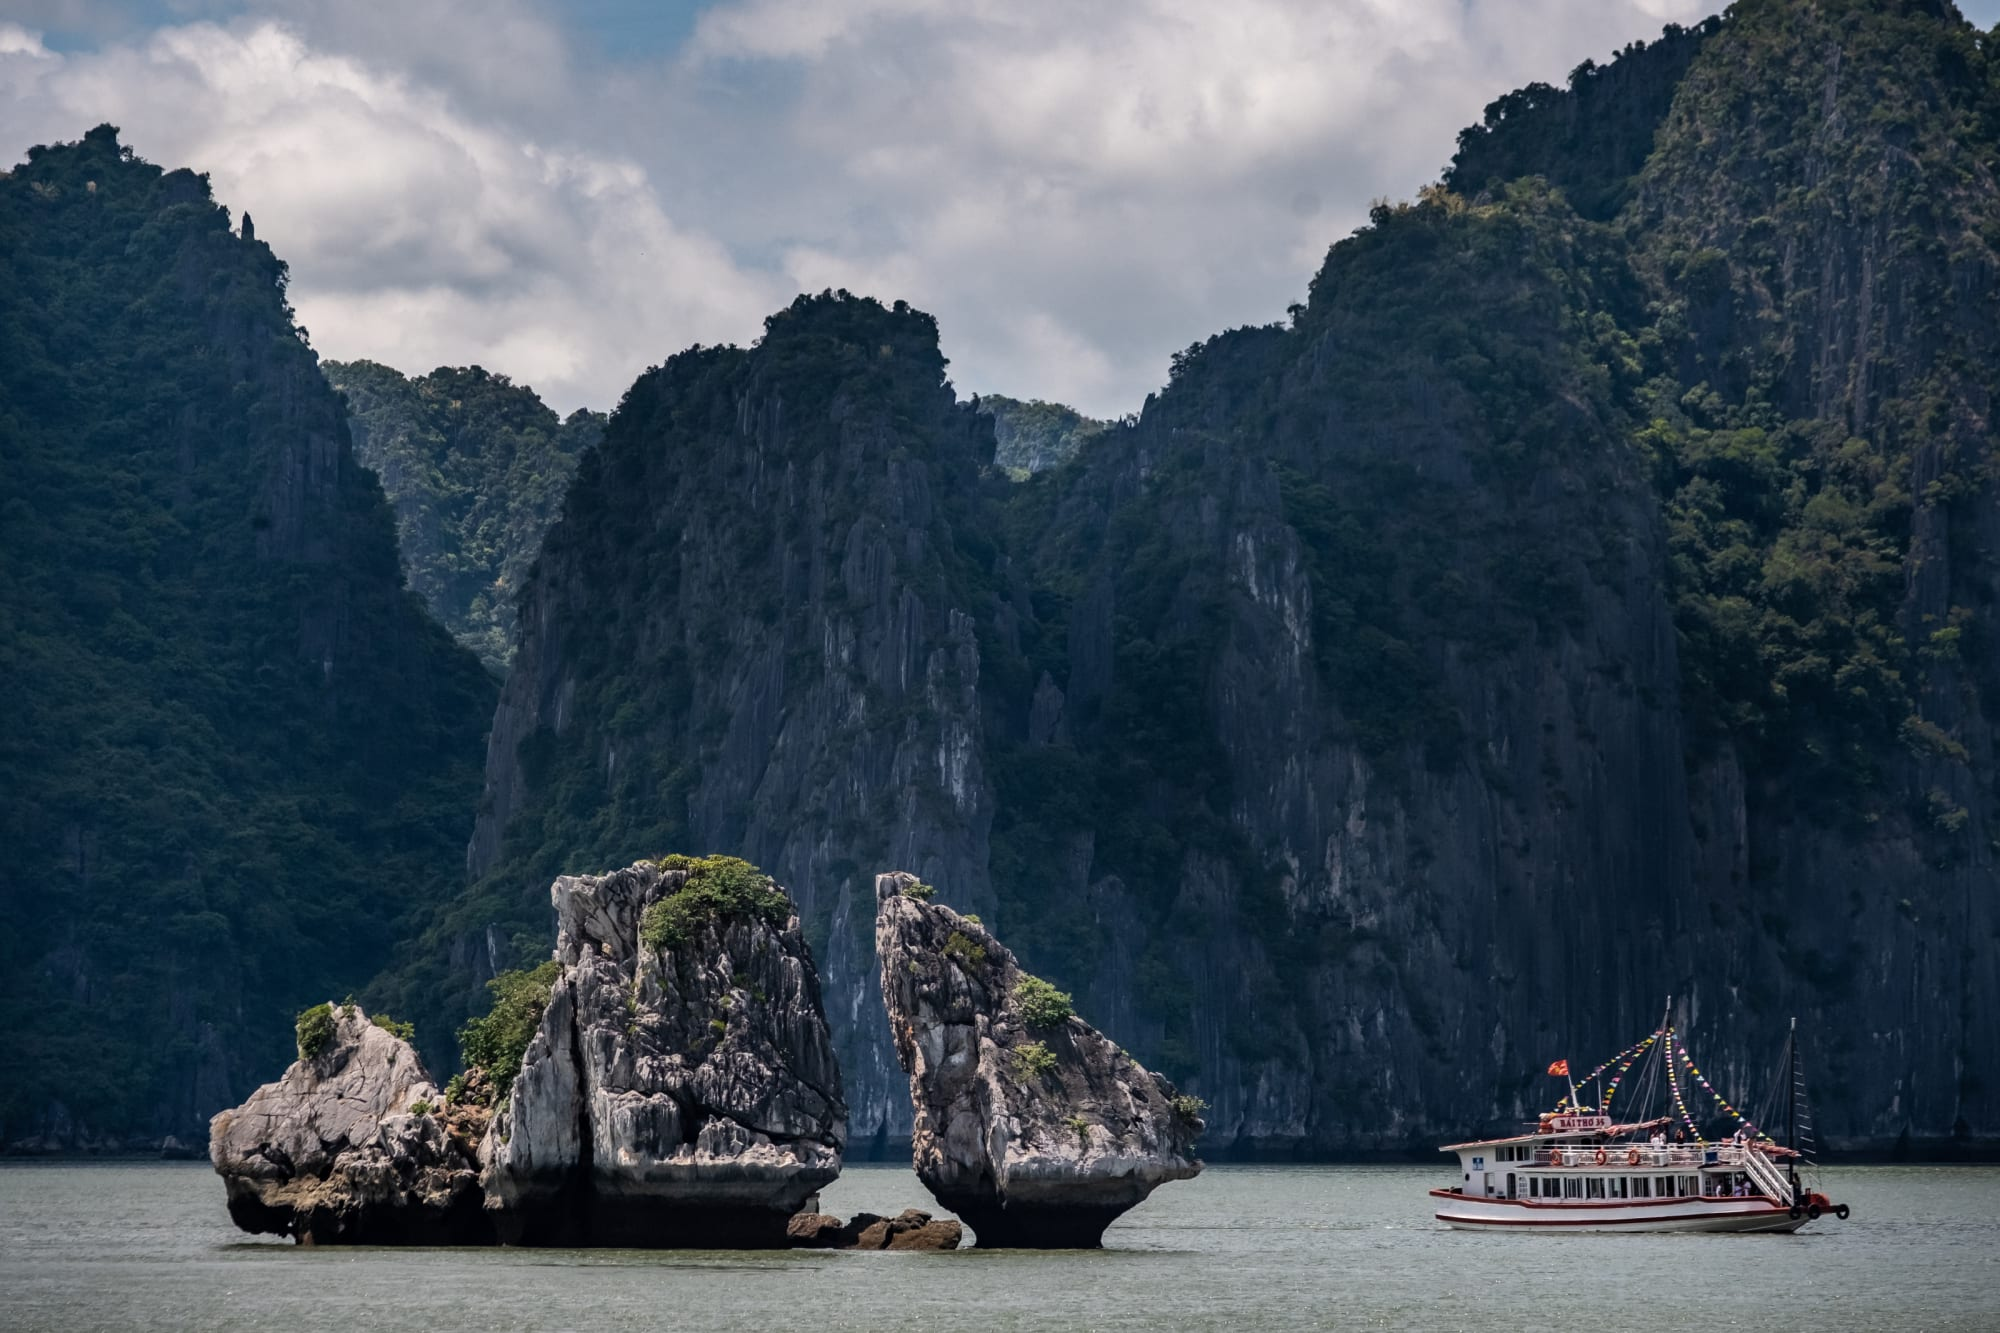 5 interesting cities you have to check out in Vietnam